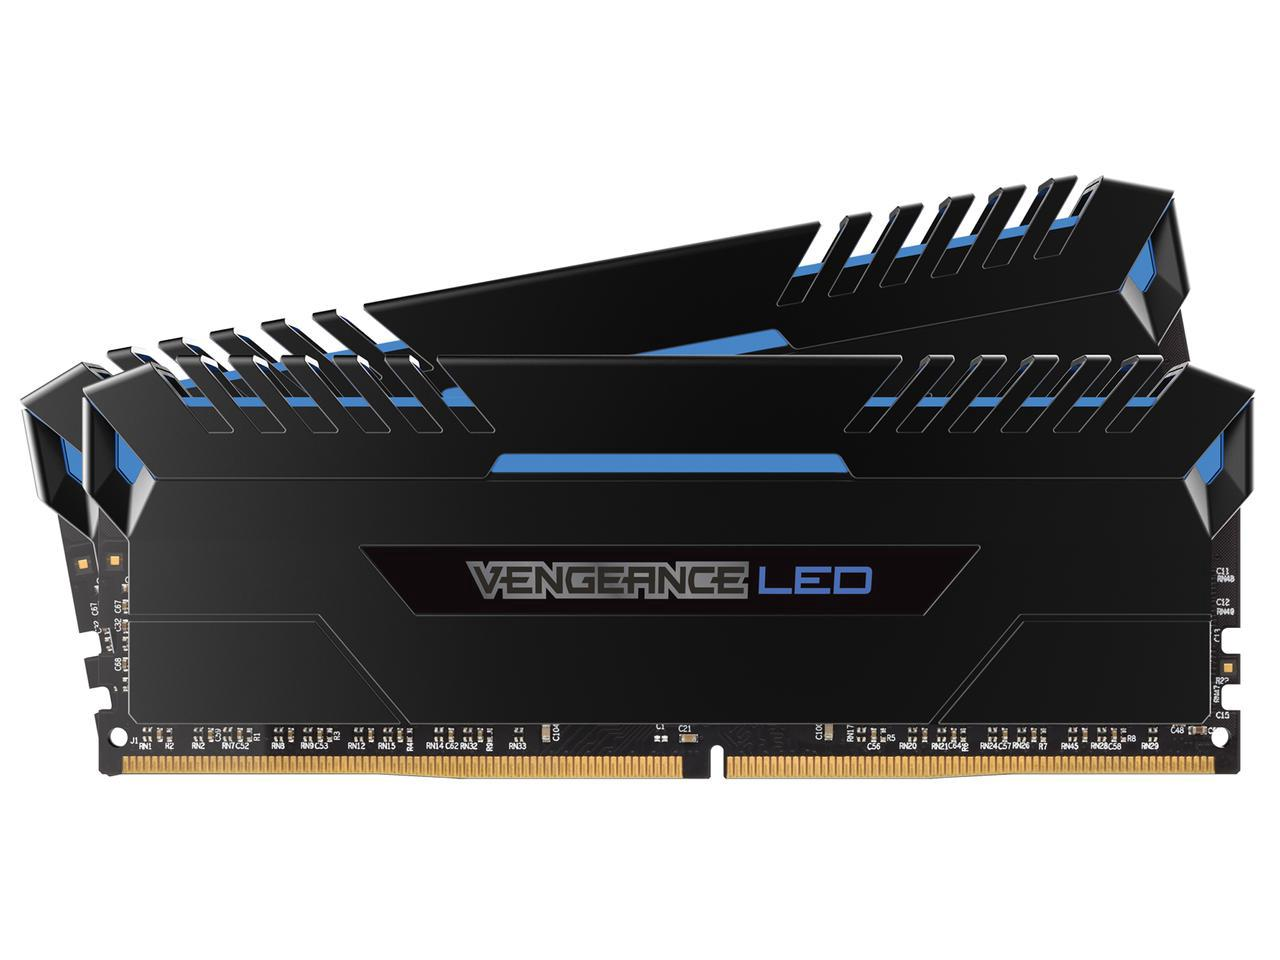 Corsair Vengeance LED 16GB (2x8GB) DDR4 3200 (PC4-25600) C16 for Intel 100 - Blue LED PC Memory (CMU16GX4M2C3200C16B)